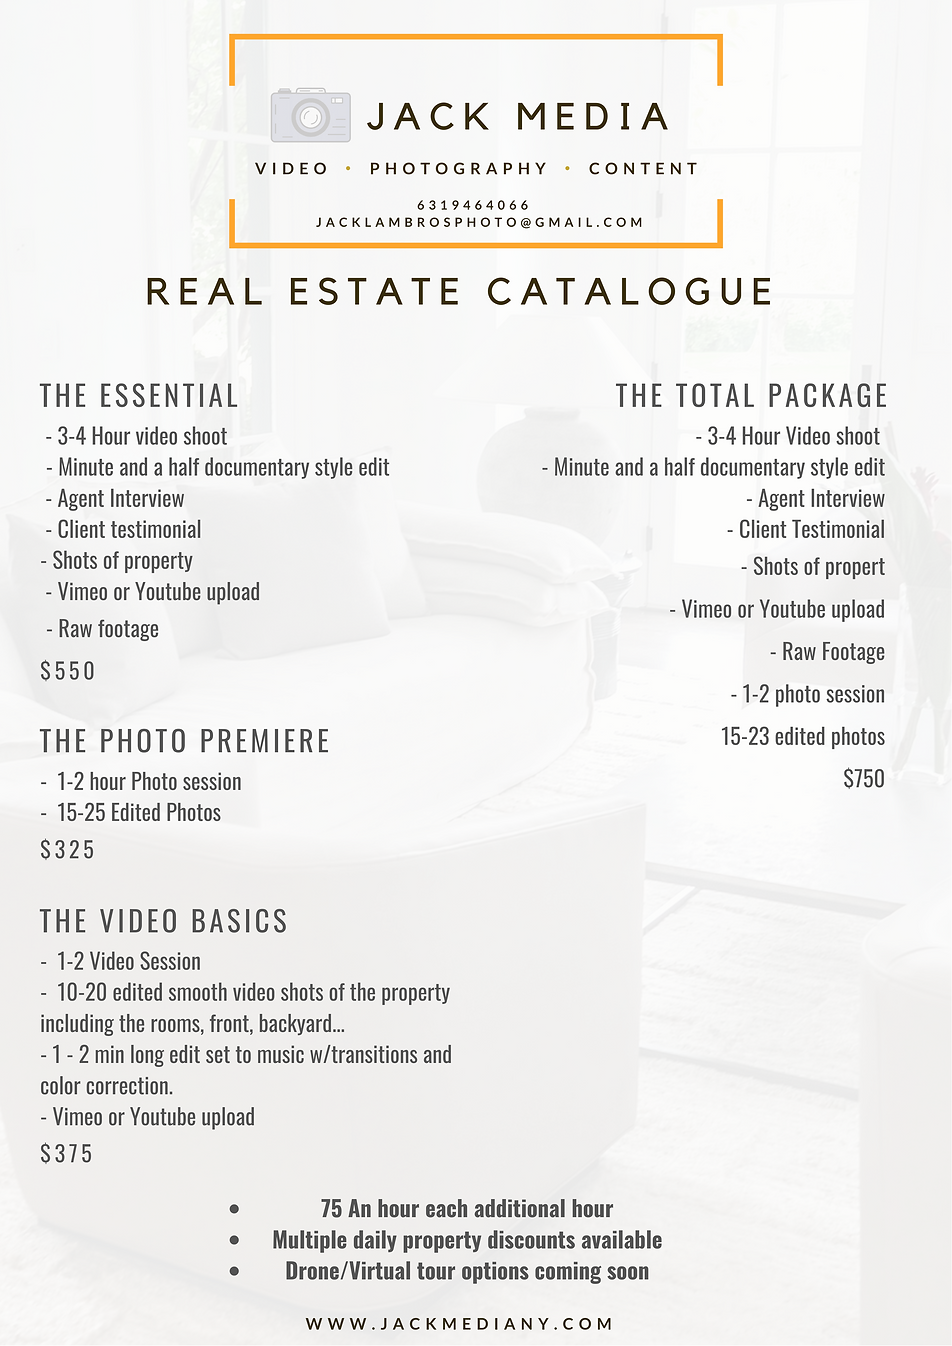 Real Estate Price List.png